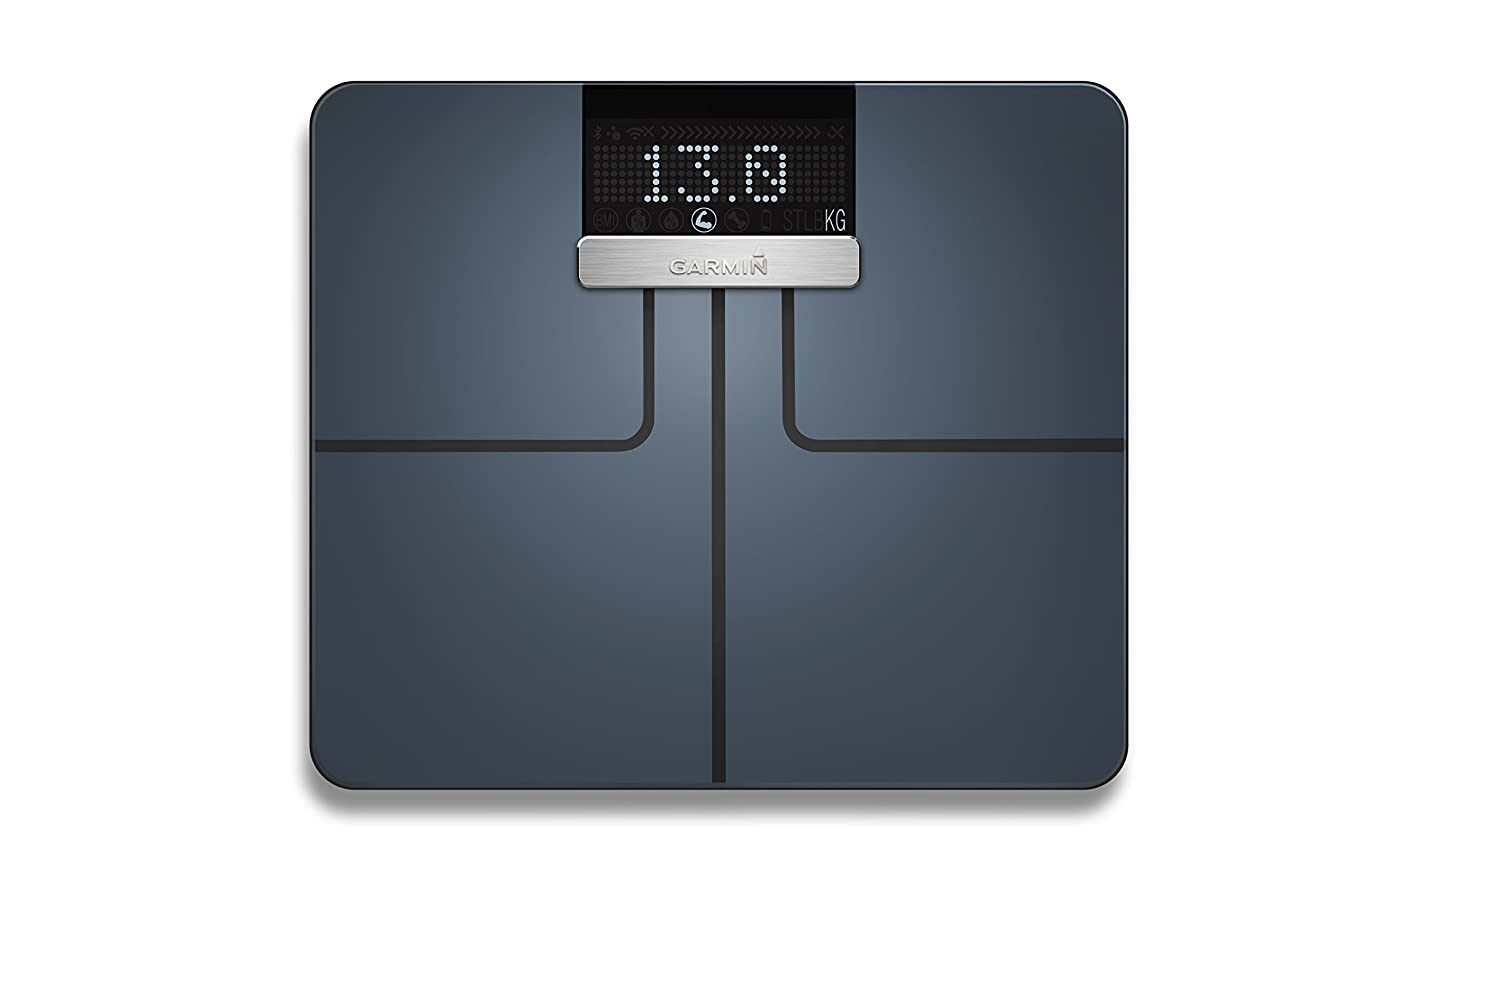 Garmin index Smart Digital Body Scale